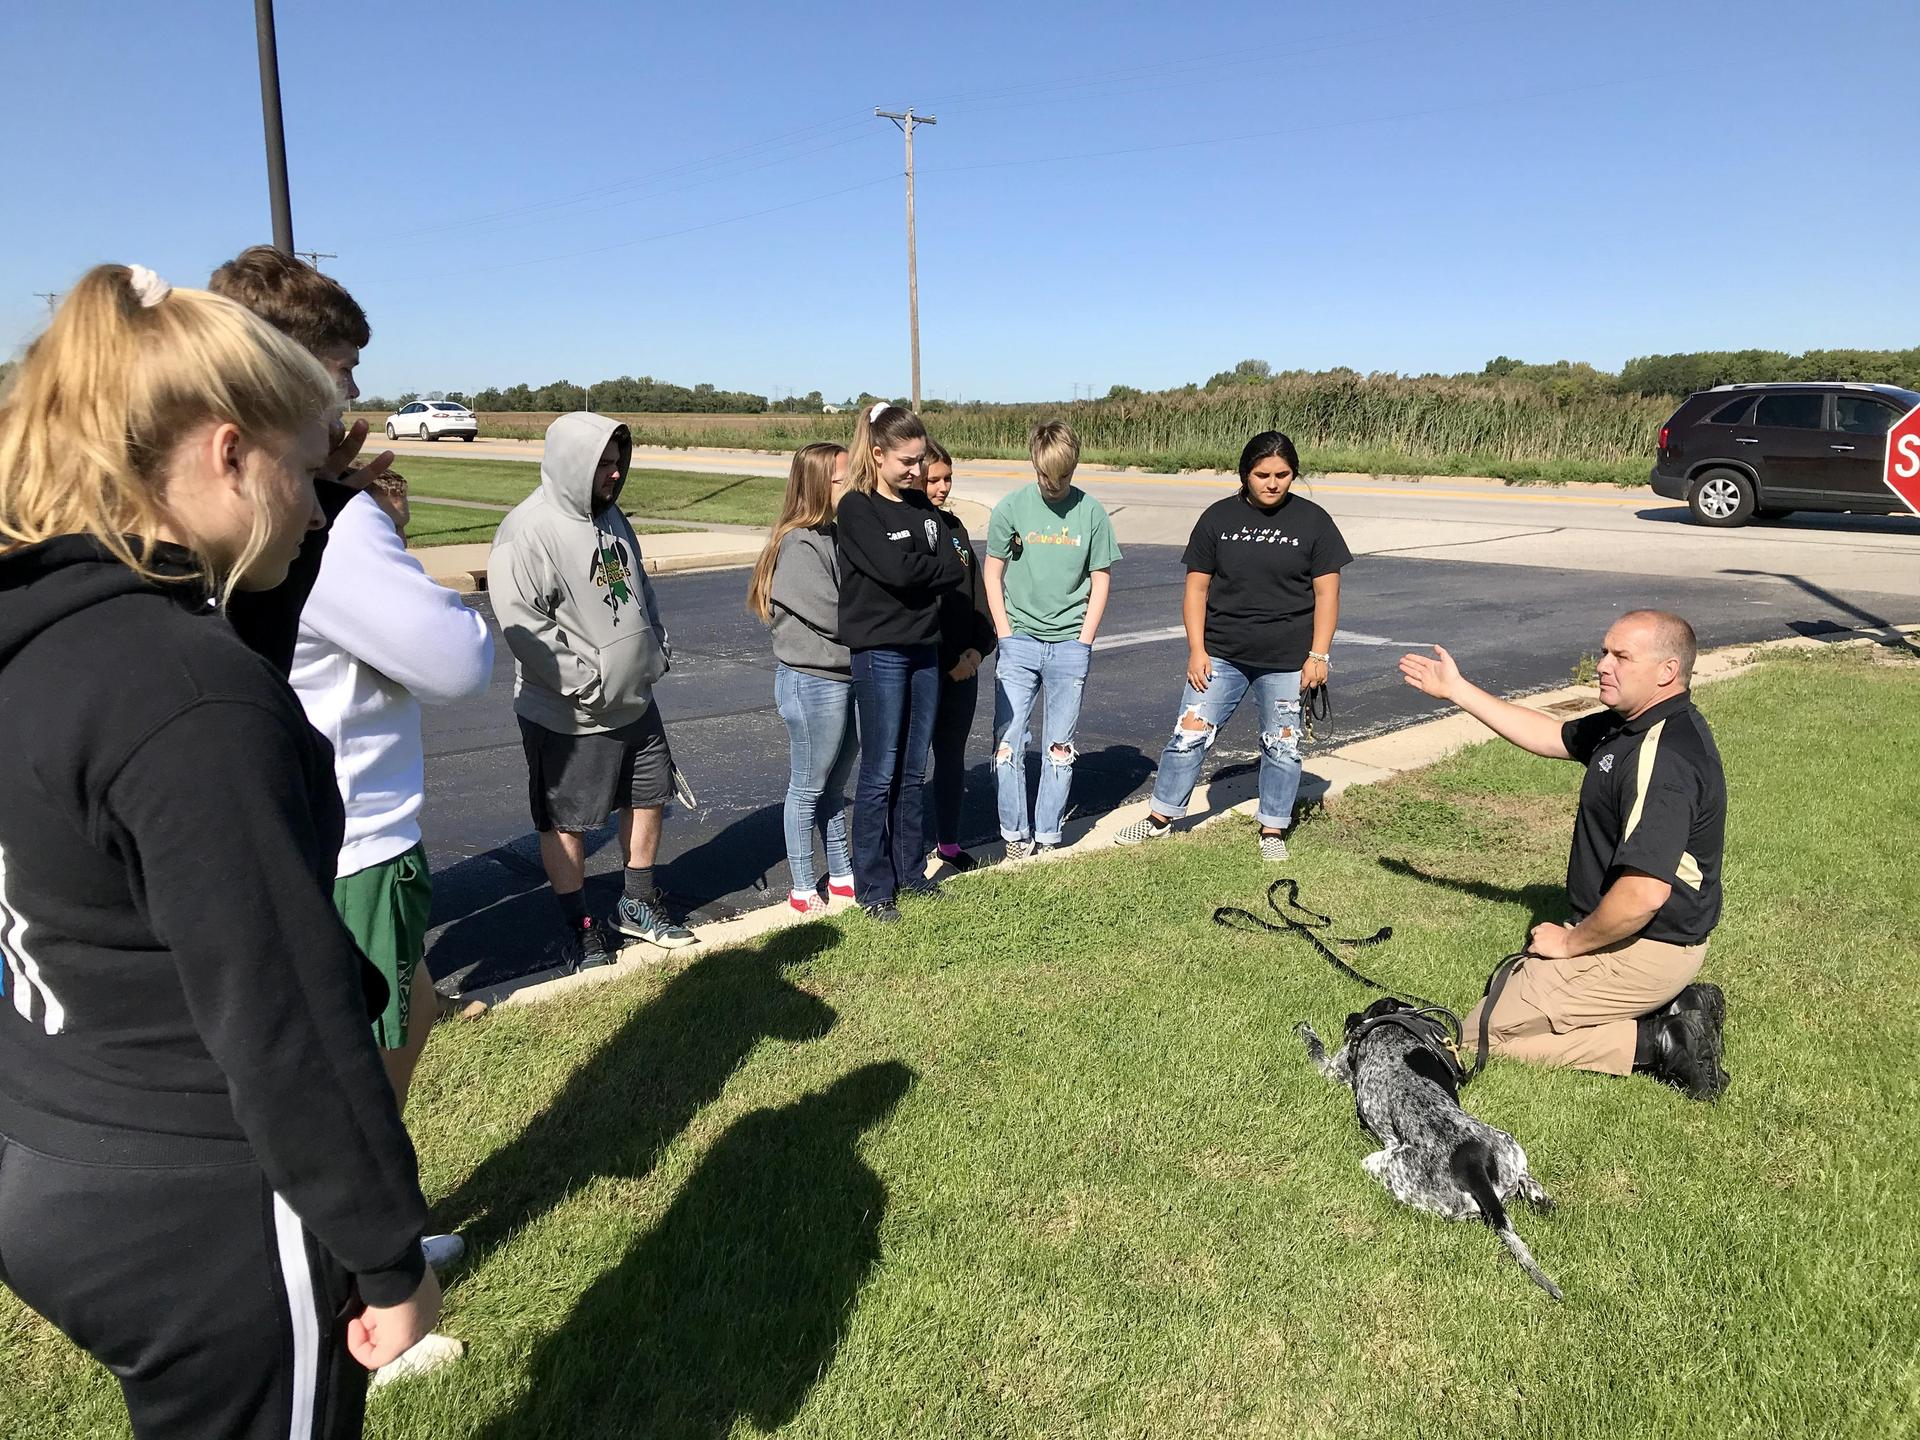 Officer Coldwater demonstrating police K-9 techniques